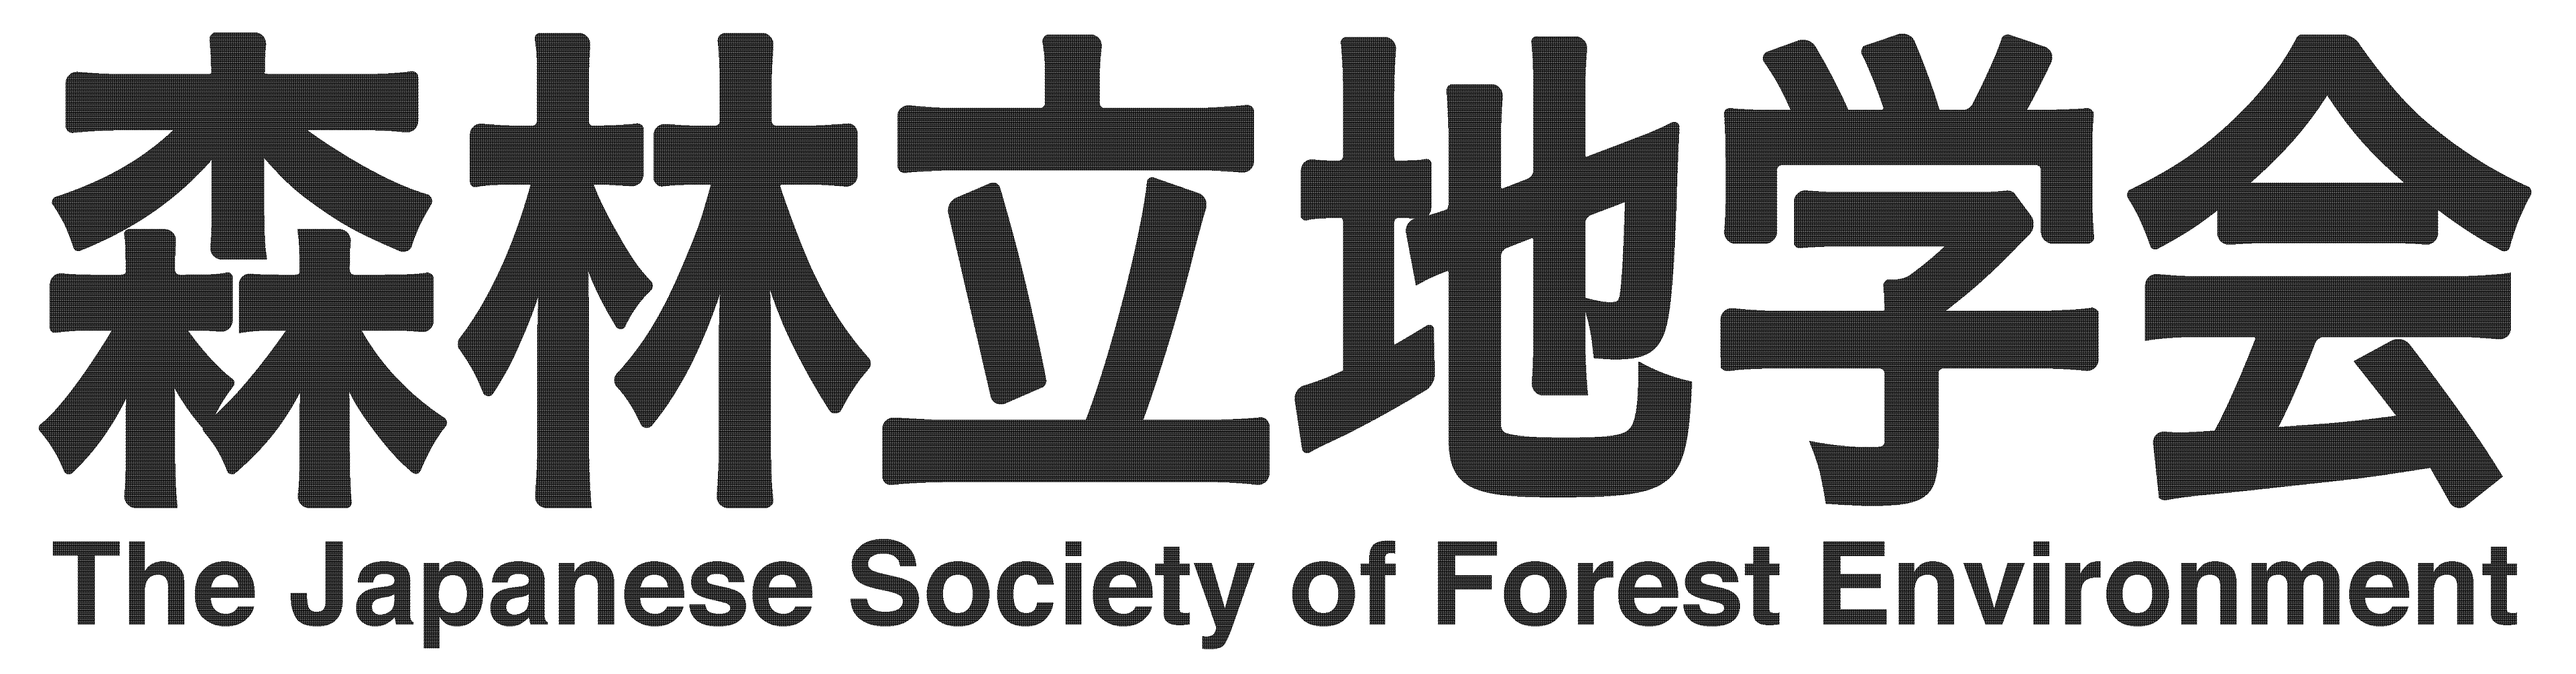 森林立地学会 | The Japanese Society of Forest Environment